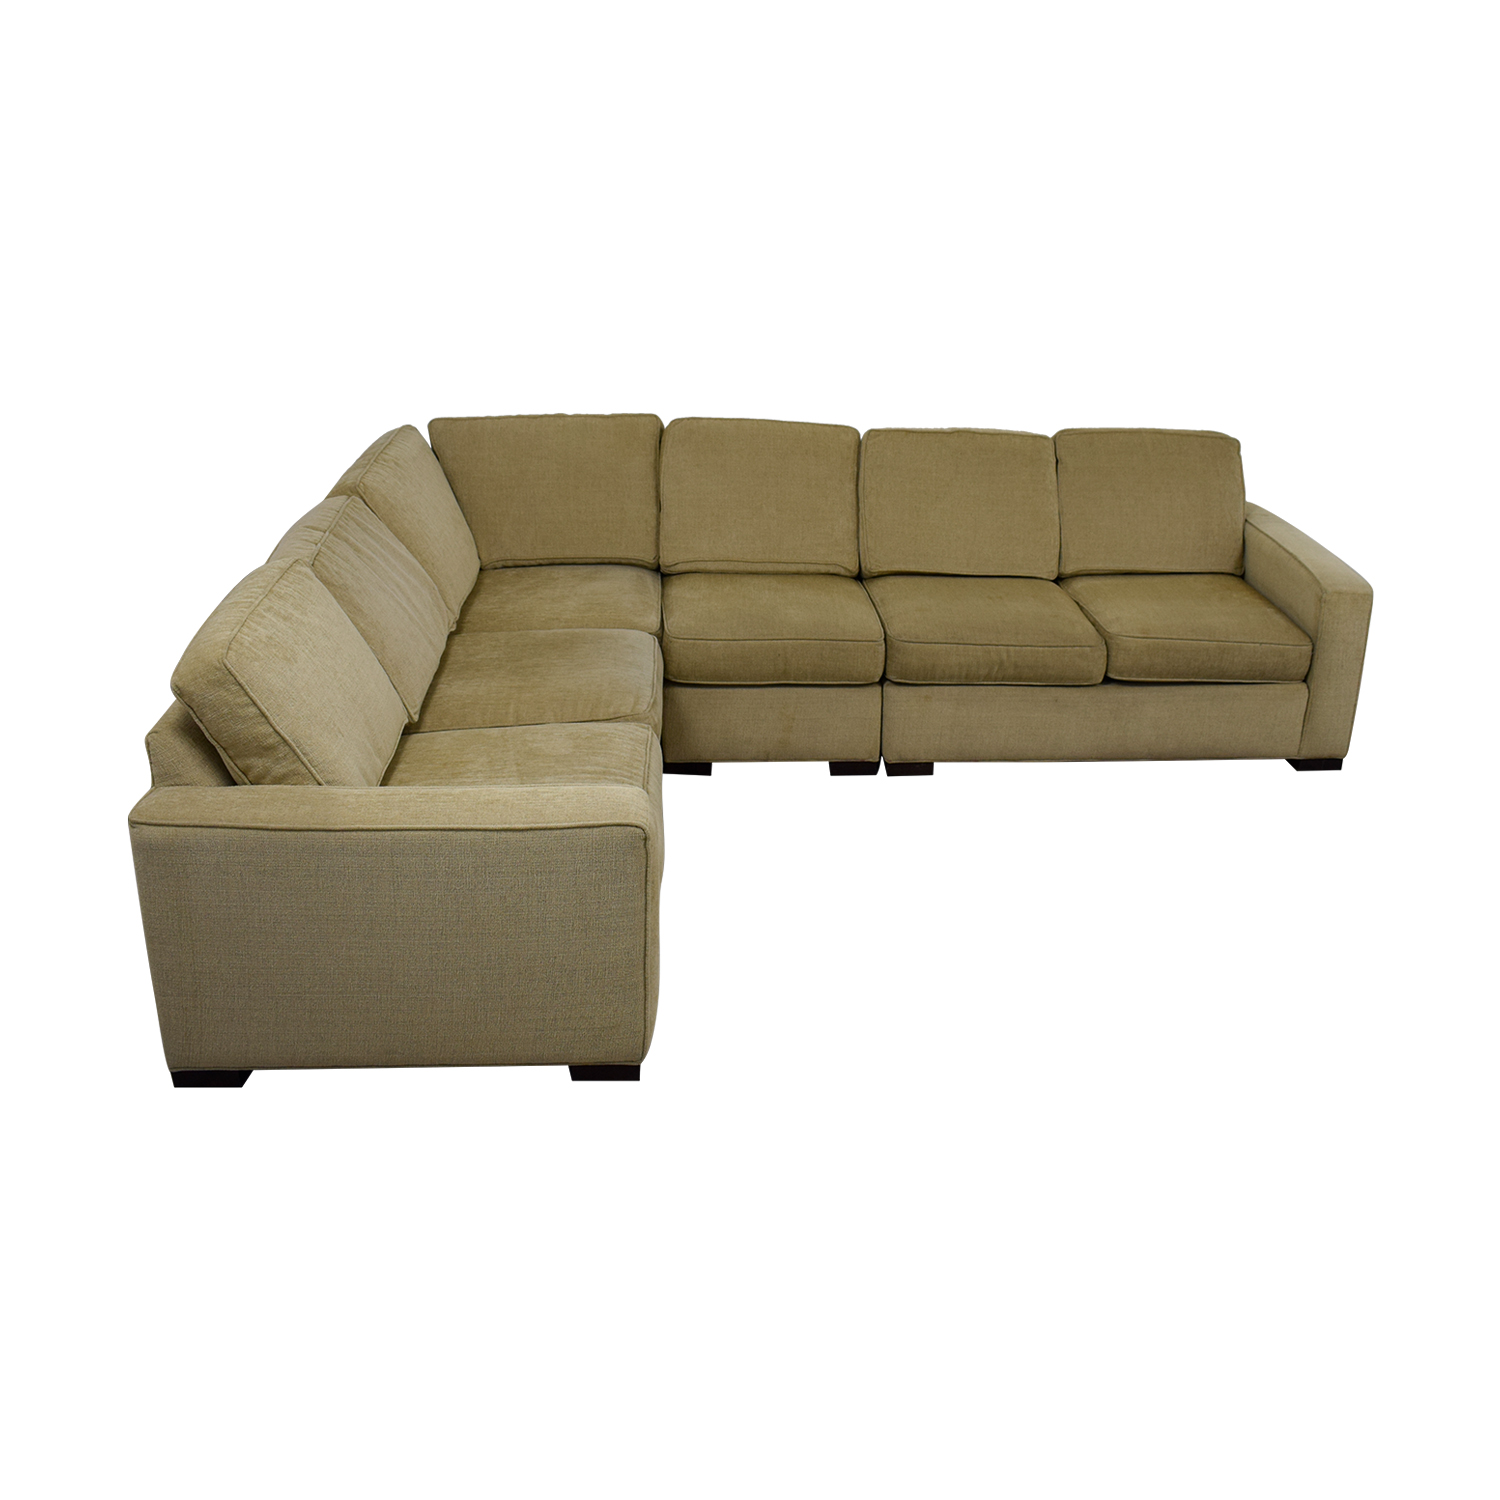 Ethan Allen Ethan Allen Tan Sectional Couch second hand